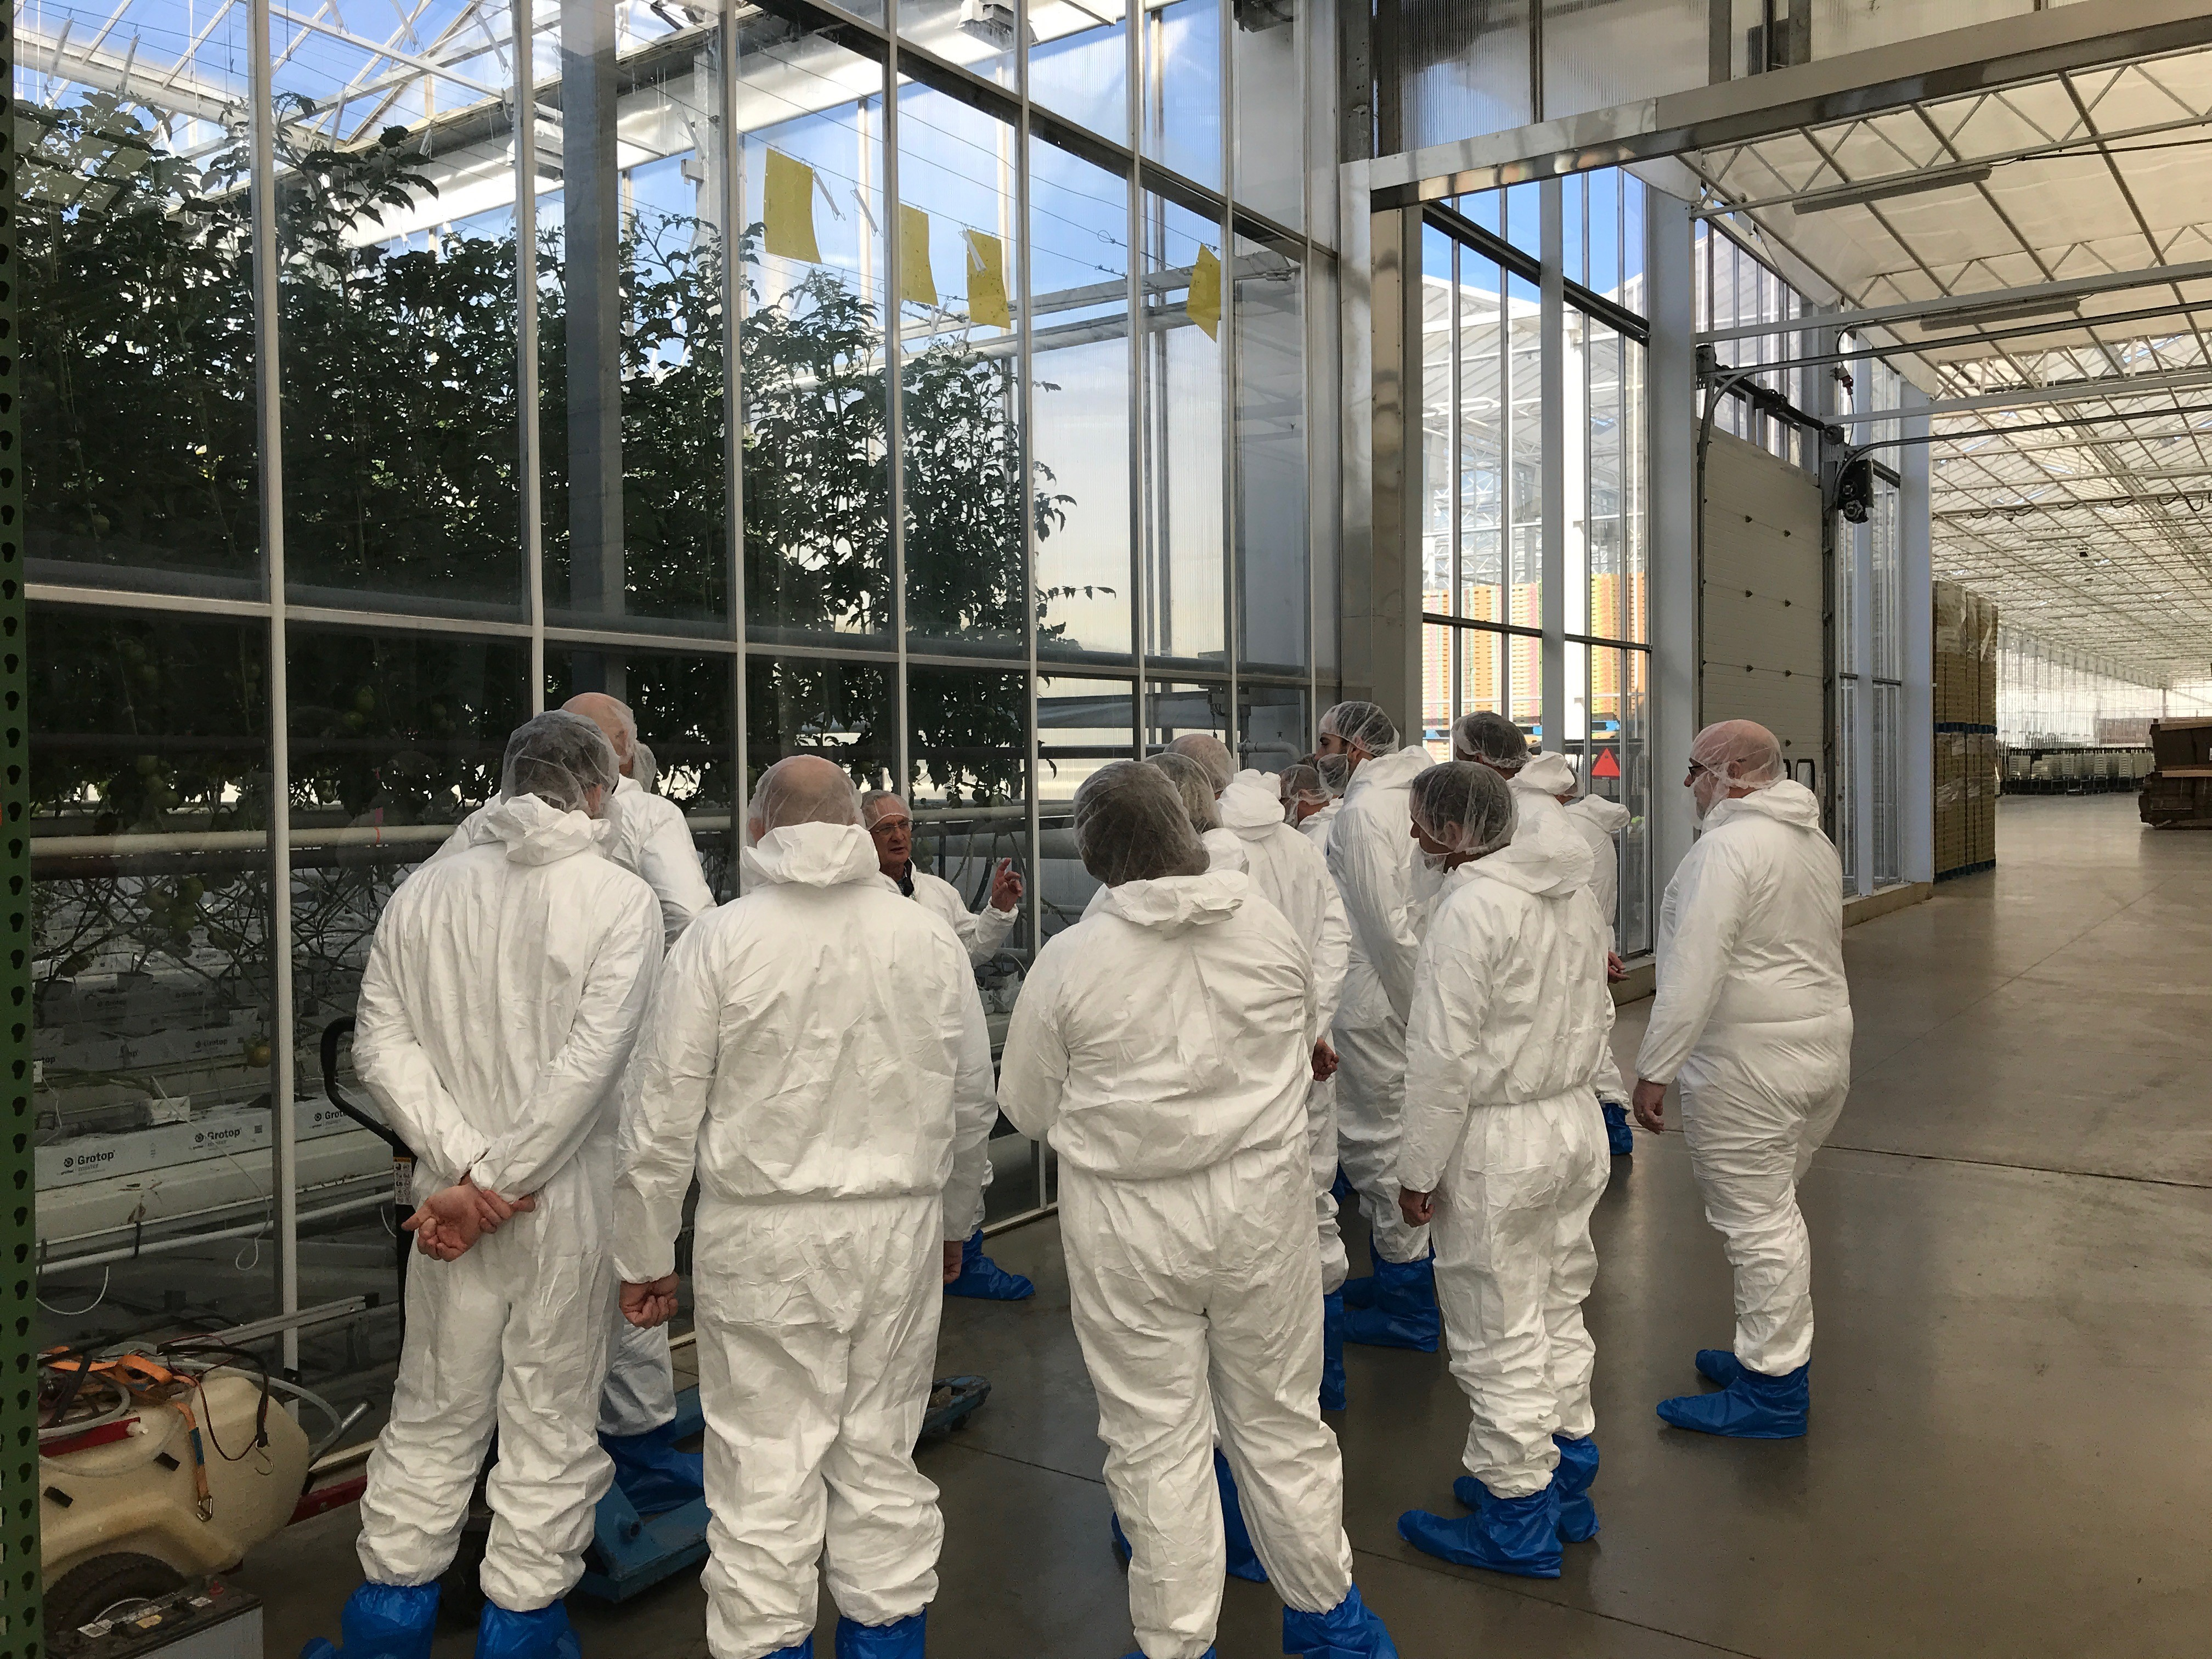 freshpoint-produce-mastronardi-tour-greenhouse-tomatoes-in-the-winter